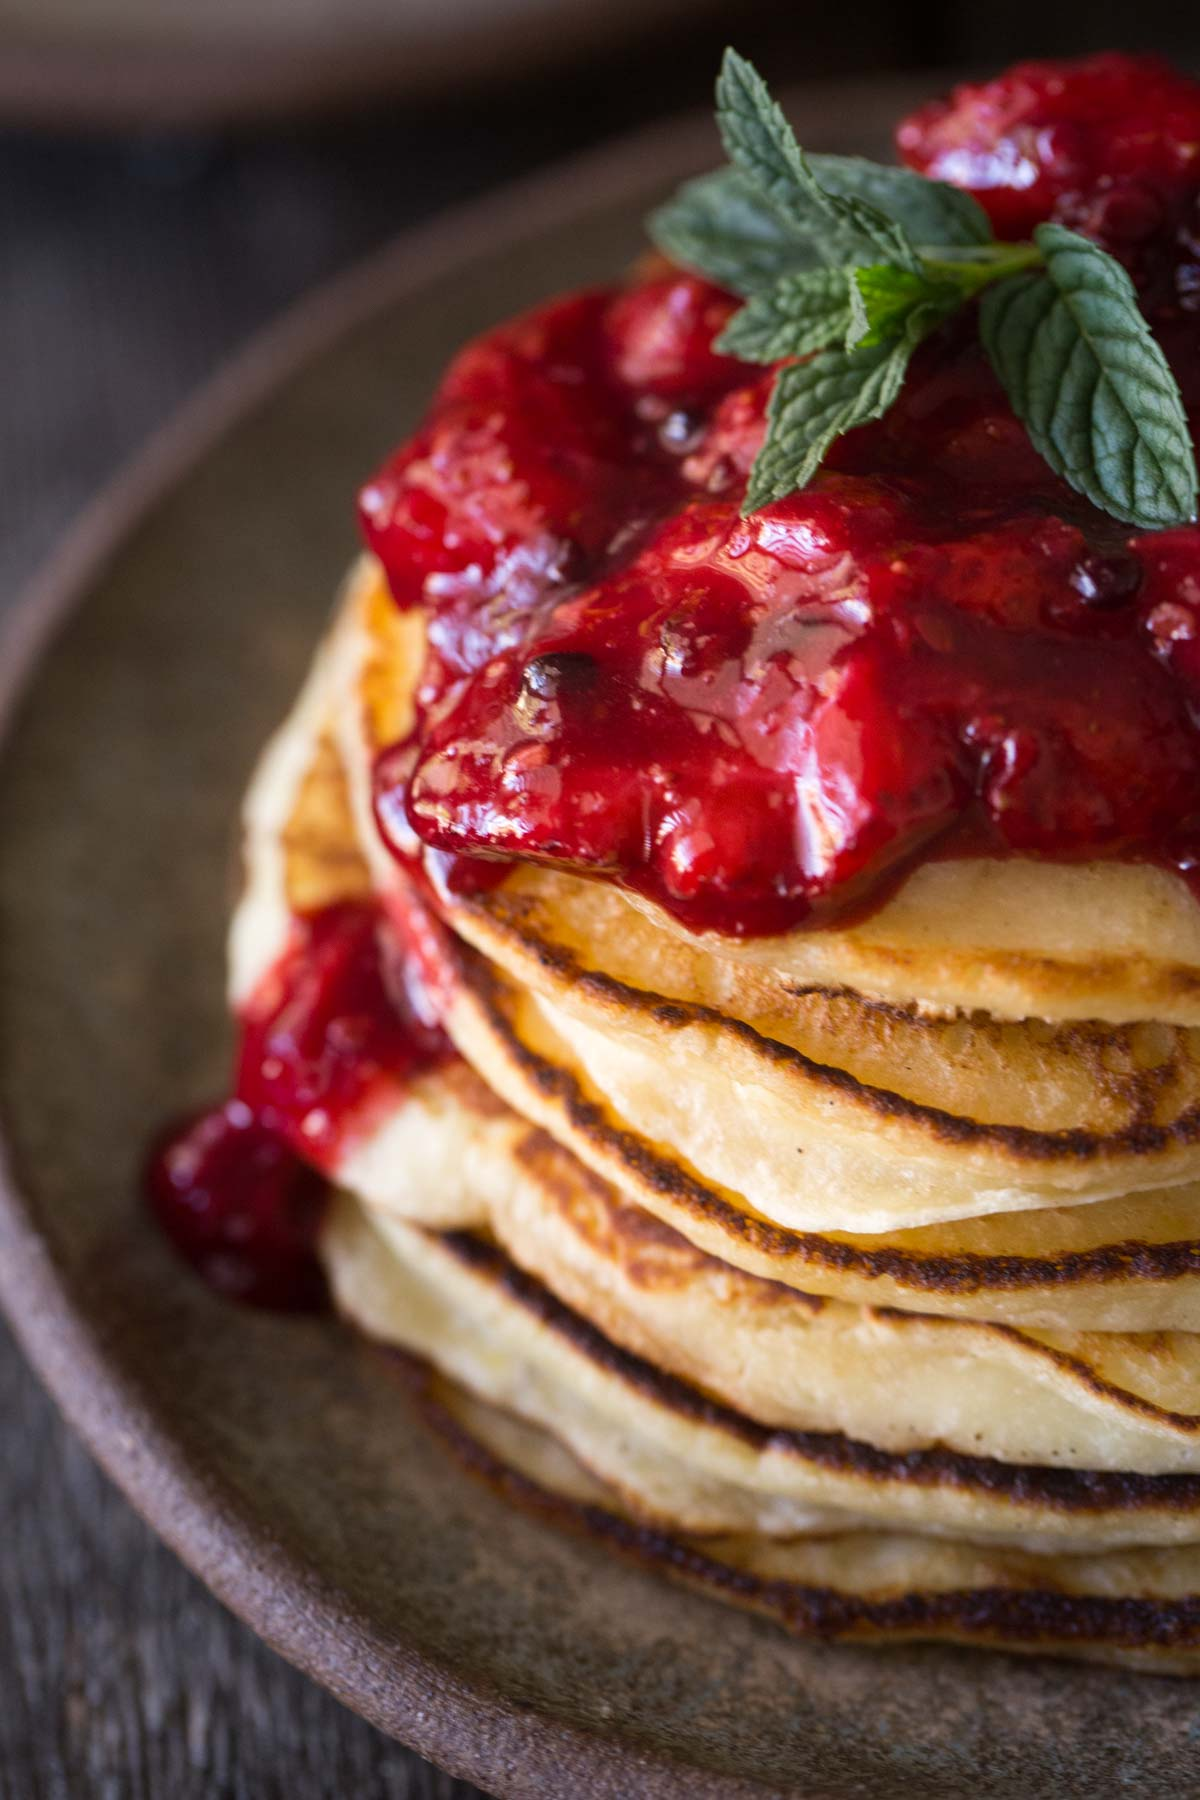 Stack of pancakes with fresh berry sauce on top and a sprig of mint.